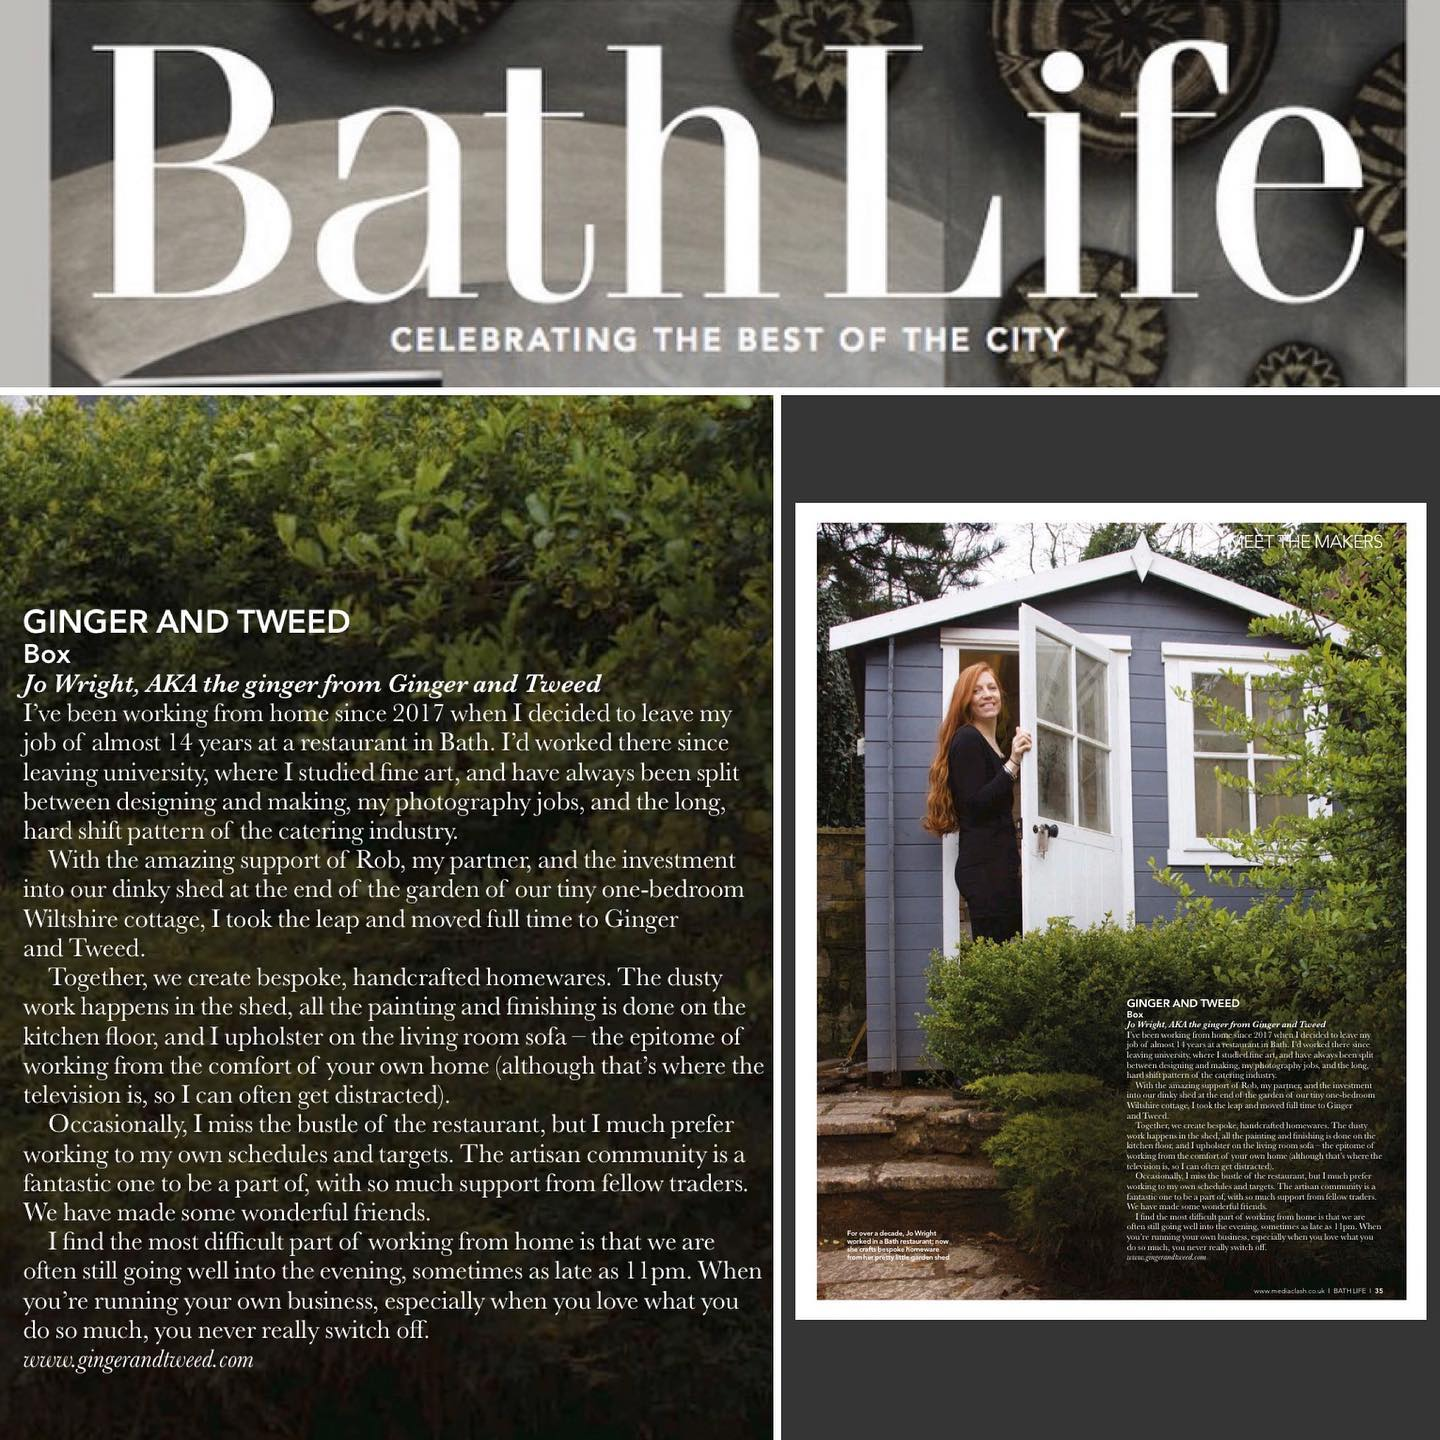 Thinking back to the @bathlifemag feature on working from home that we were included in last year...Fortunately, I'm used to being at home a fair chunk and can easily pass the time with making, pottering, drinking lots of tea and catching up on social media, but it's totally thrown me knowing I can't just pop out to grab a coffee with friends or go on those spontaneous wood shopping missions. We've got plenty of ideas and enough materials to keep is going for a little while fortunately, so it's business as usual production wise at G & T HQ. Obviously, our upcoming markets have been cancelled but many are opening new avenues for us indies to promote and sell our products which is so great! We are planning to take part in quite a few virtual markets over the next few weeks which we will announce soon, as the first one is next Saturday/Sunday. Thank you to everyone for your support, likes, comments and purchases, they mean the world at this uncertain time. Take care! ...#Shopsmall #shopindependent #supportsmallbusinesses #staysafe #staypositive #shoponline